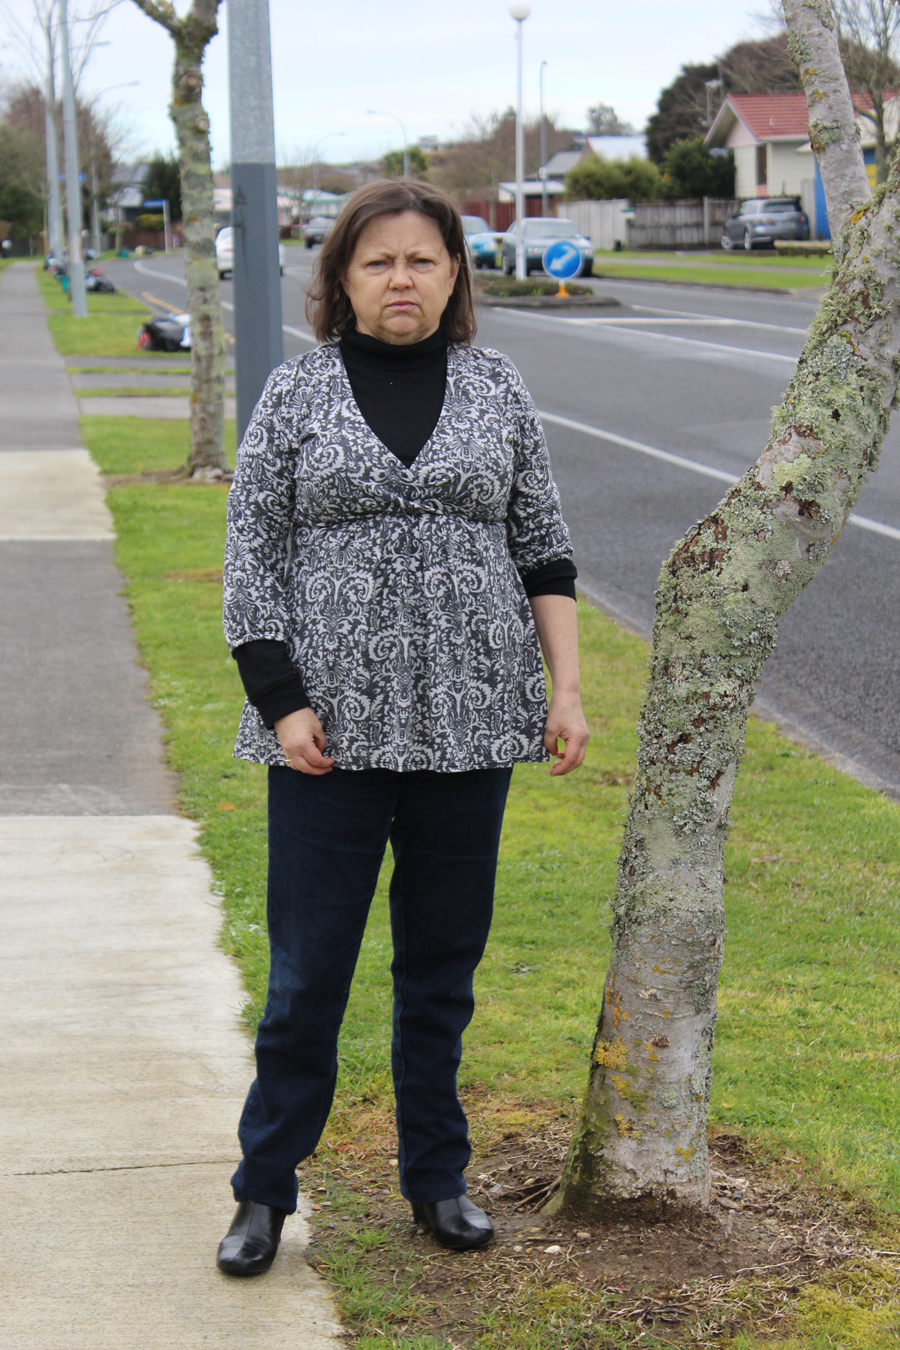 OVERGROWN ISSUE: Kaye Roberts says street trees where she lives overgrow and cause dangerous footpath cracks. Photo: Sharn Roberts.